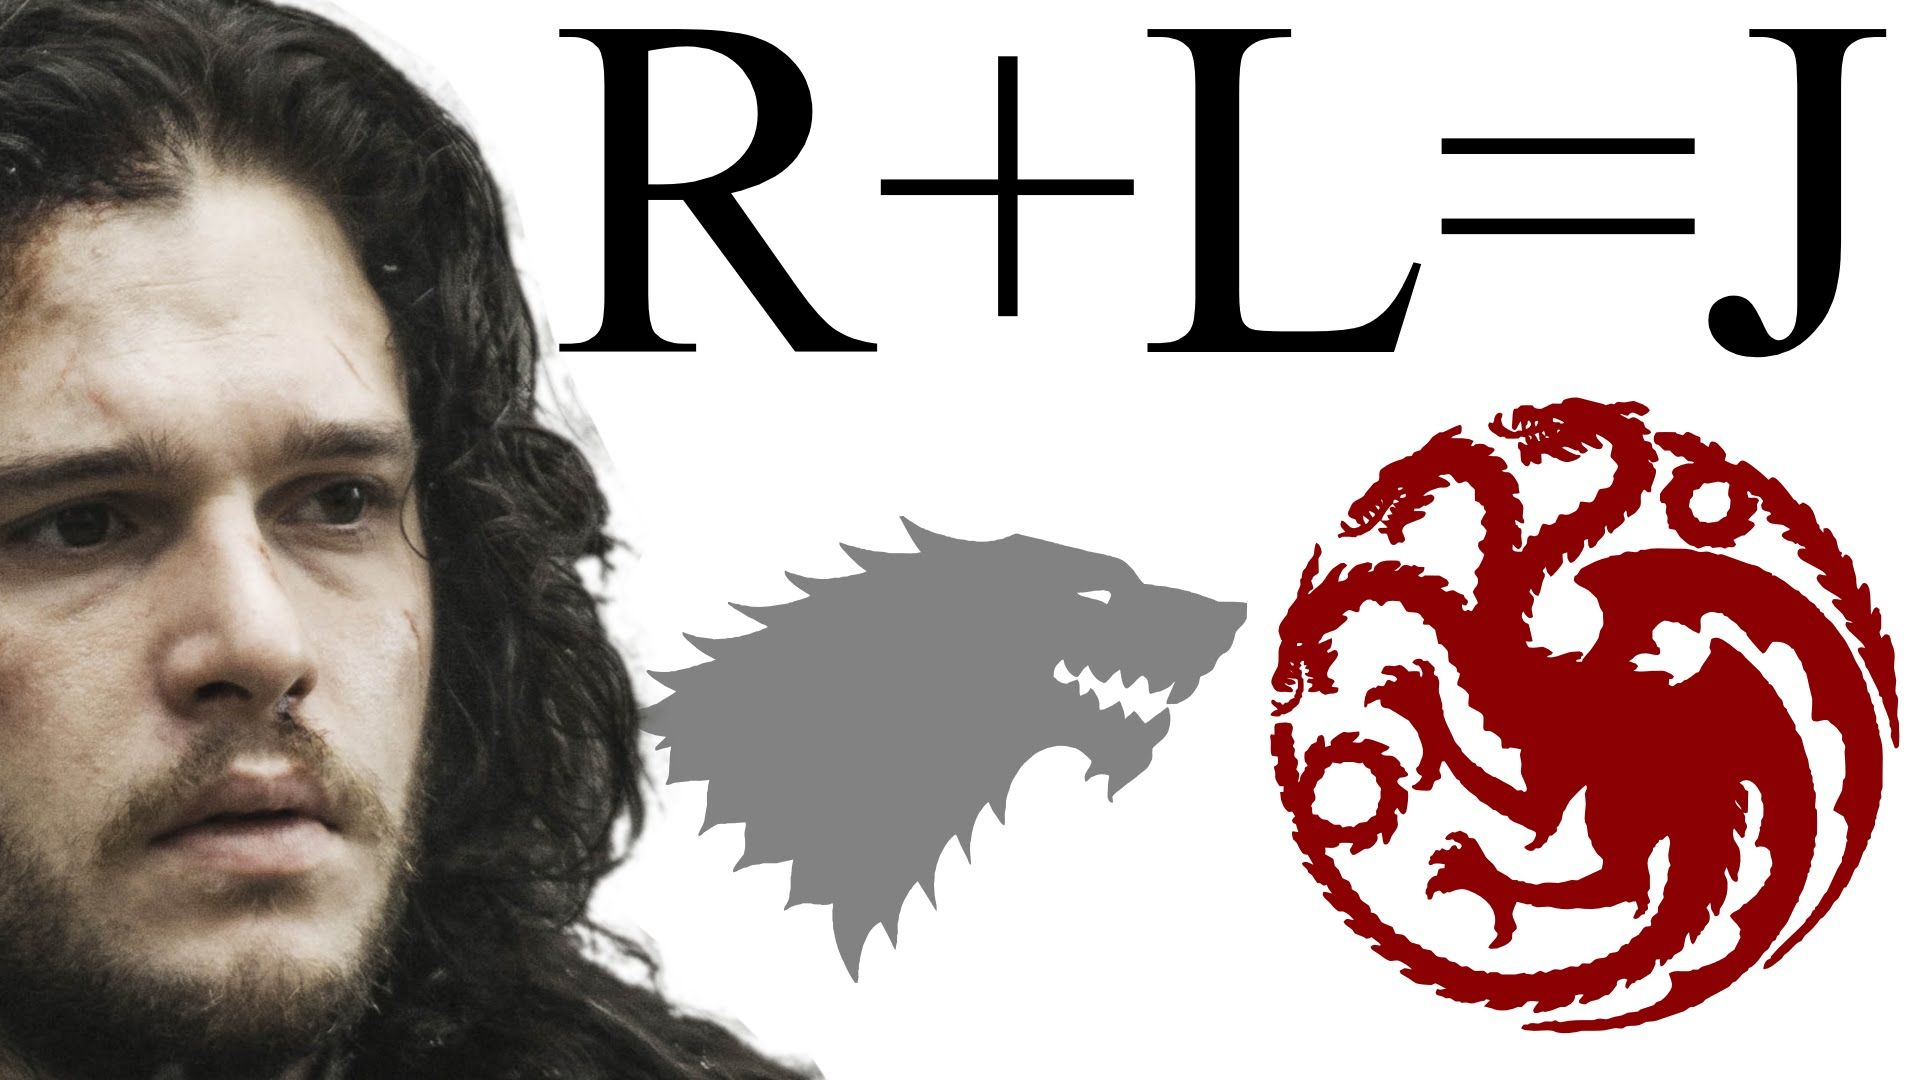 game of thrones r+l=j theory explained